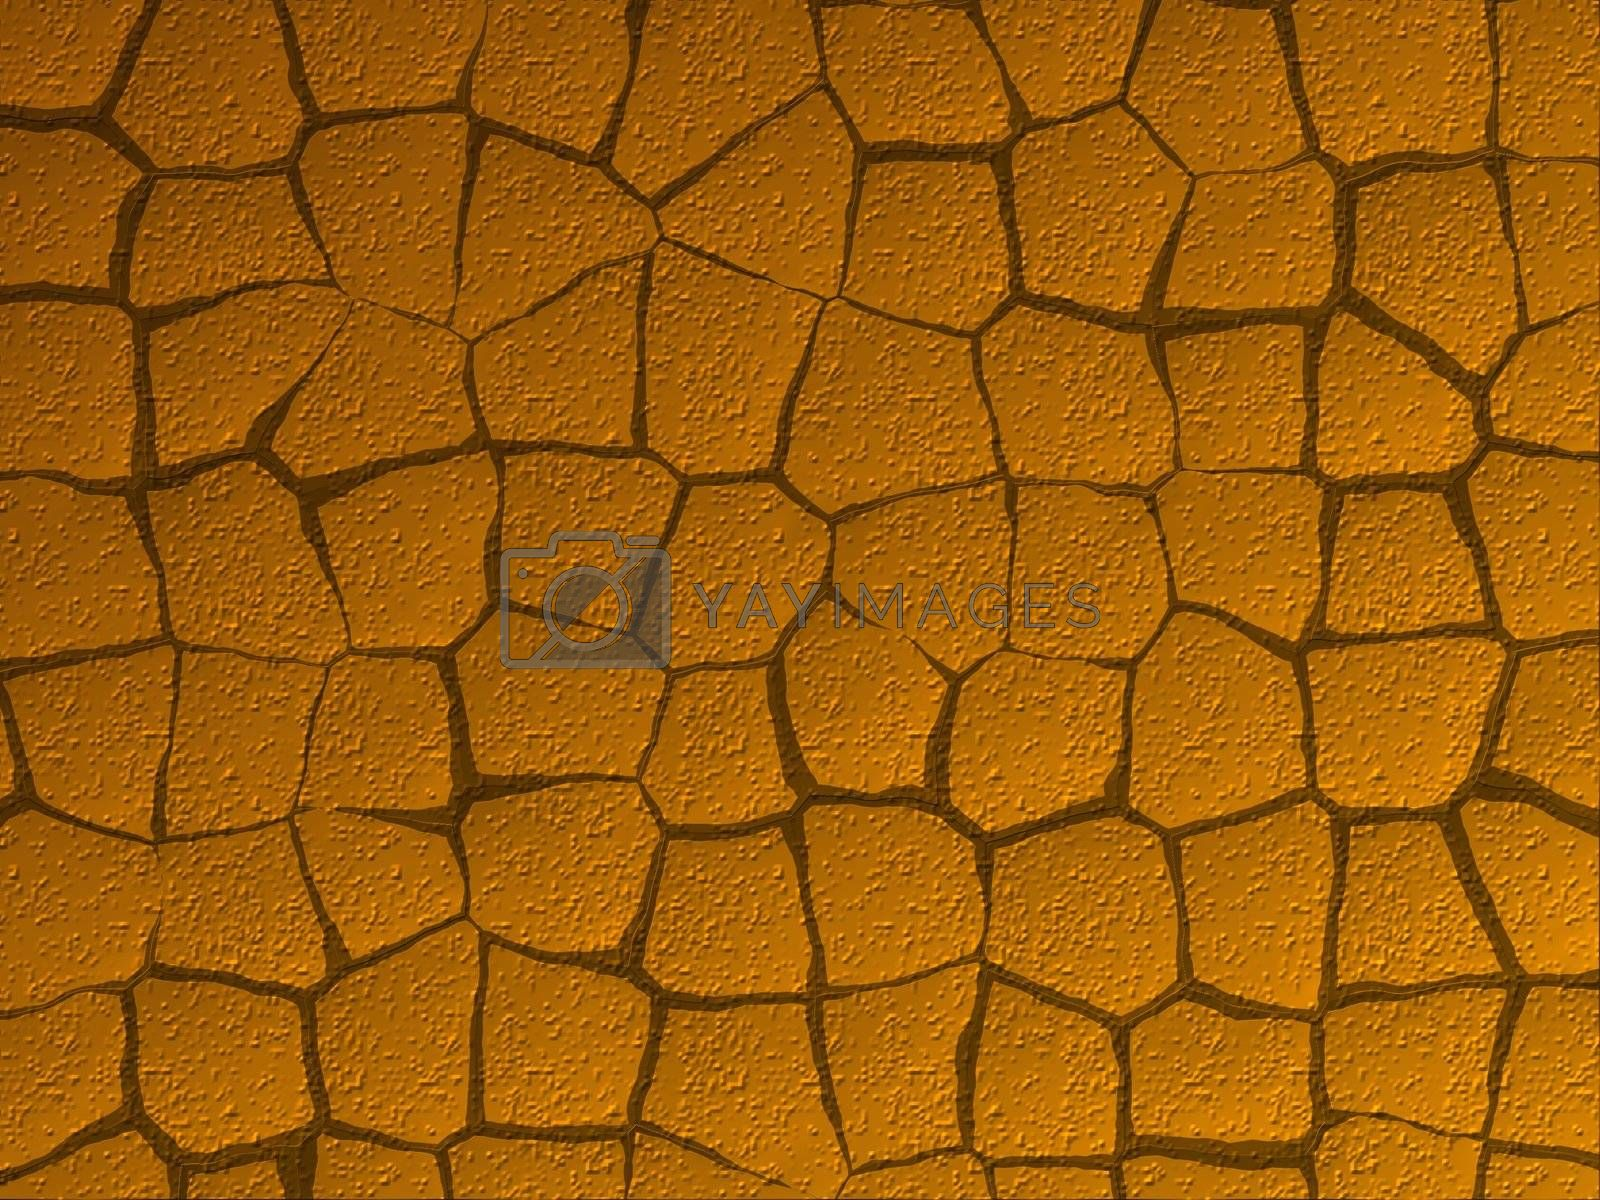 texture of a brown cracked ground